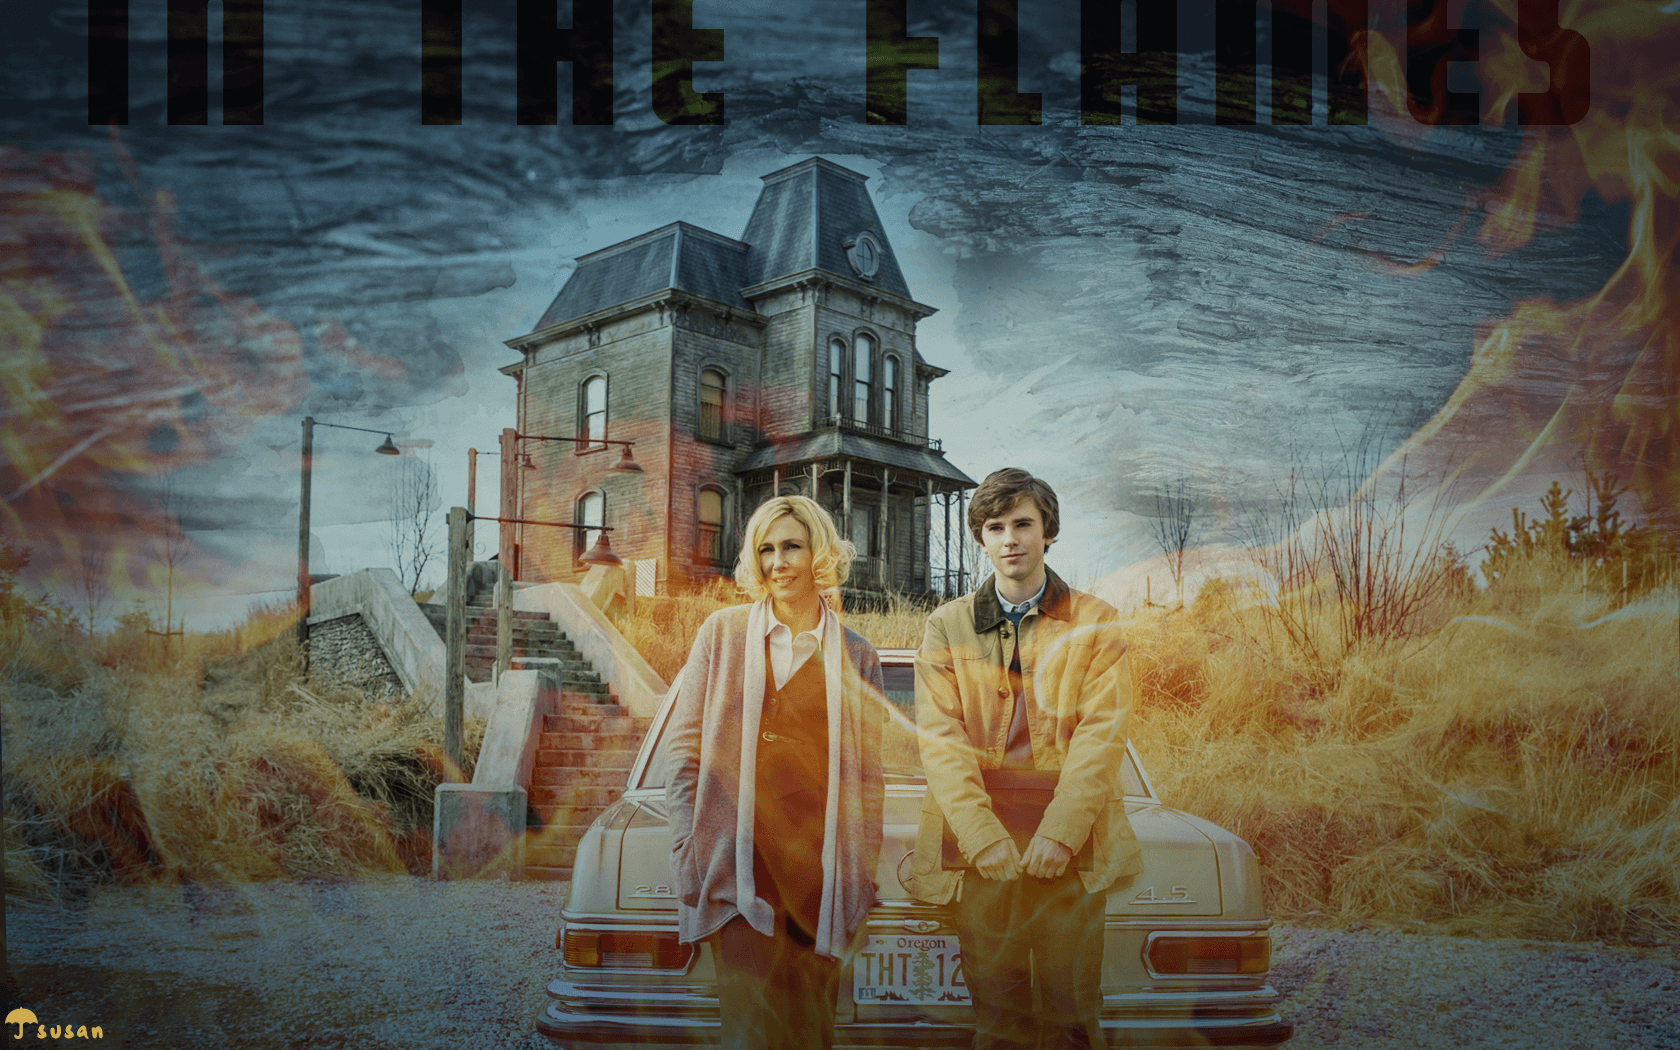 Bates Motel Wallpapers, Awesome 28 Bates Motel Wallpapers